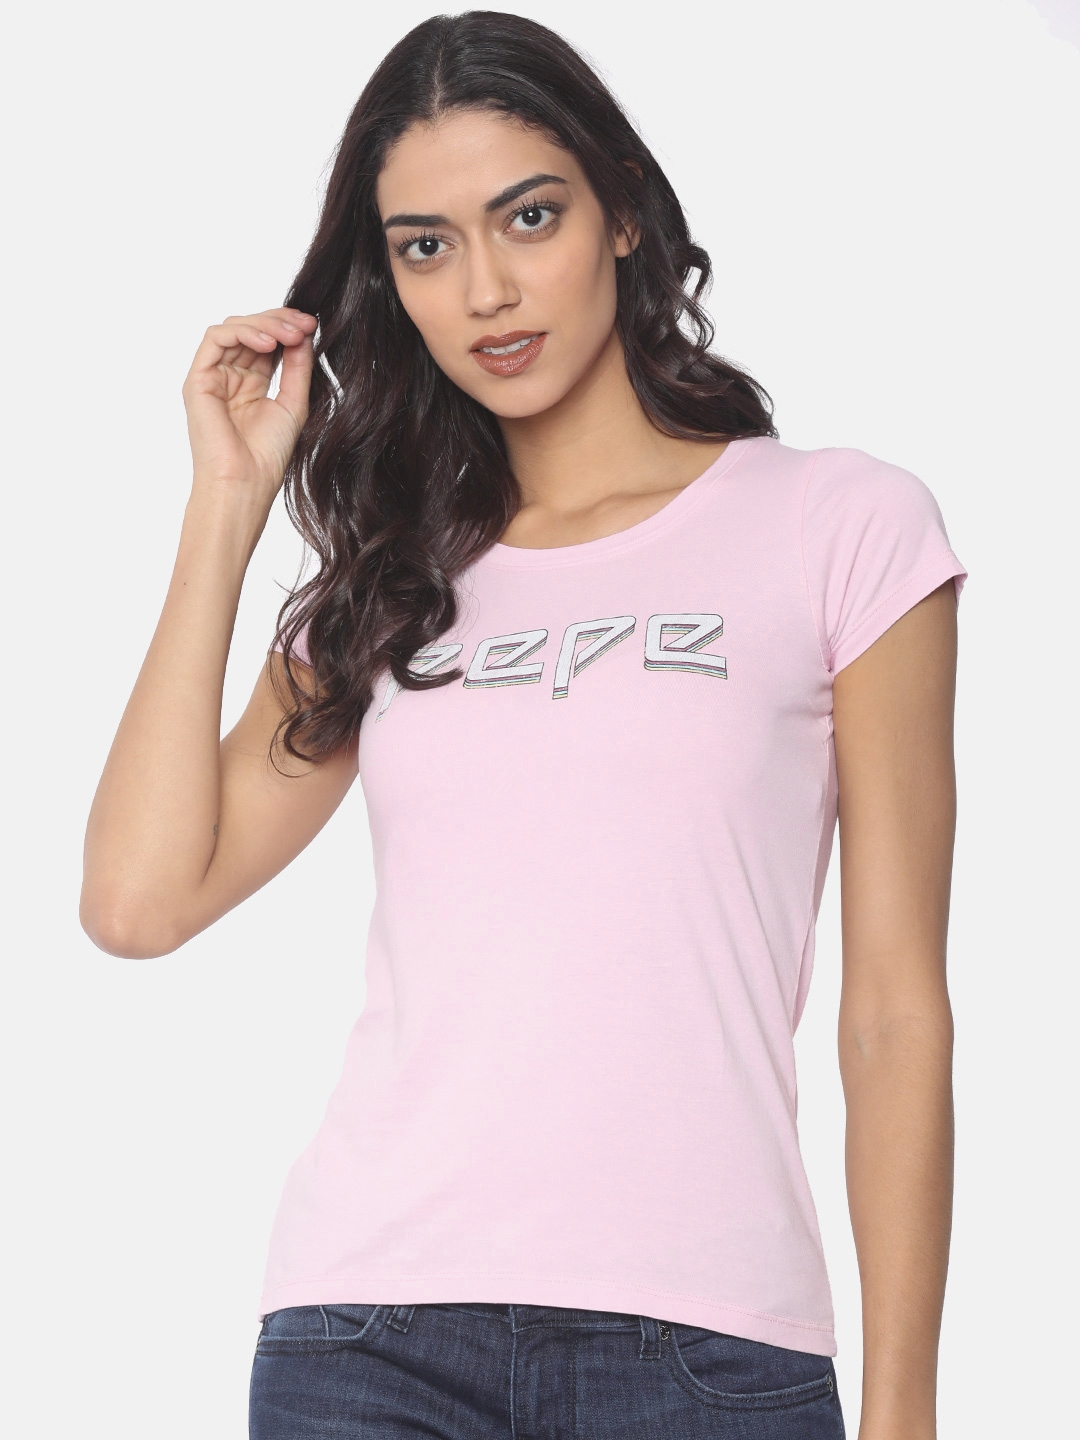 efee183457 Buy Pepe Jeans Women Pink Printed Round Neck T Shirt - Tshirts for ...